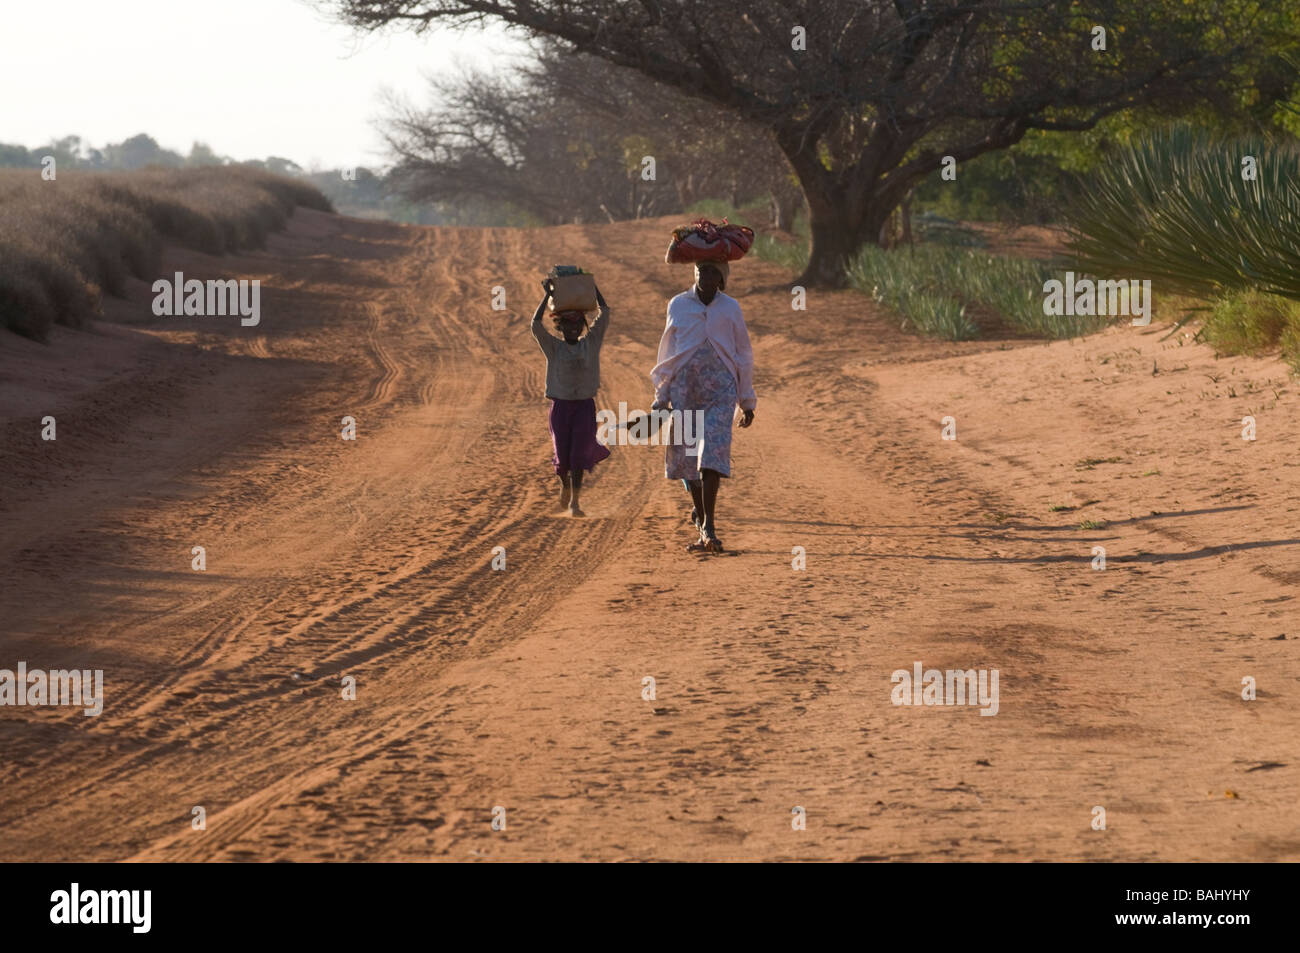 Women on their way home Berenty Private Reserve Madgascar Africa - Stock Image